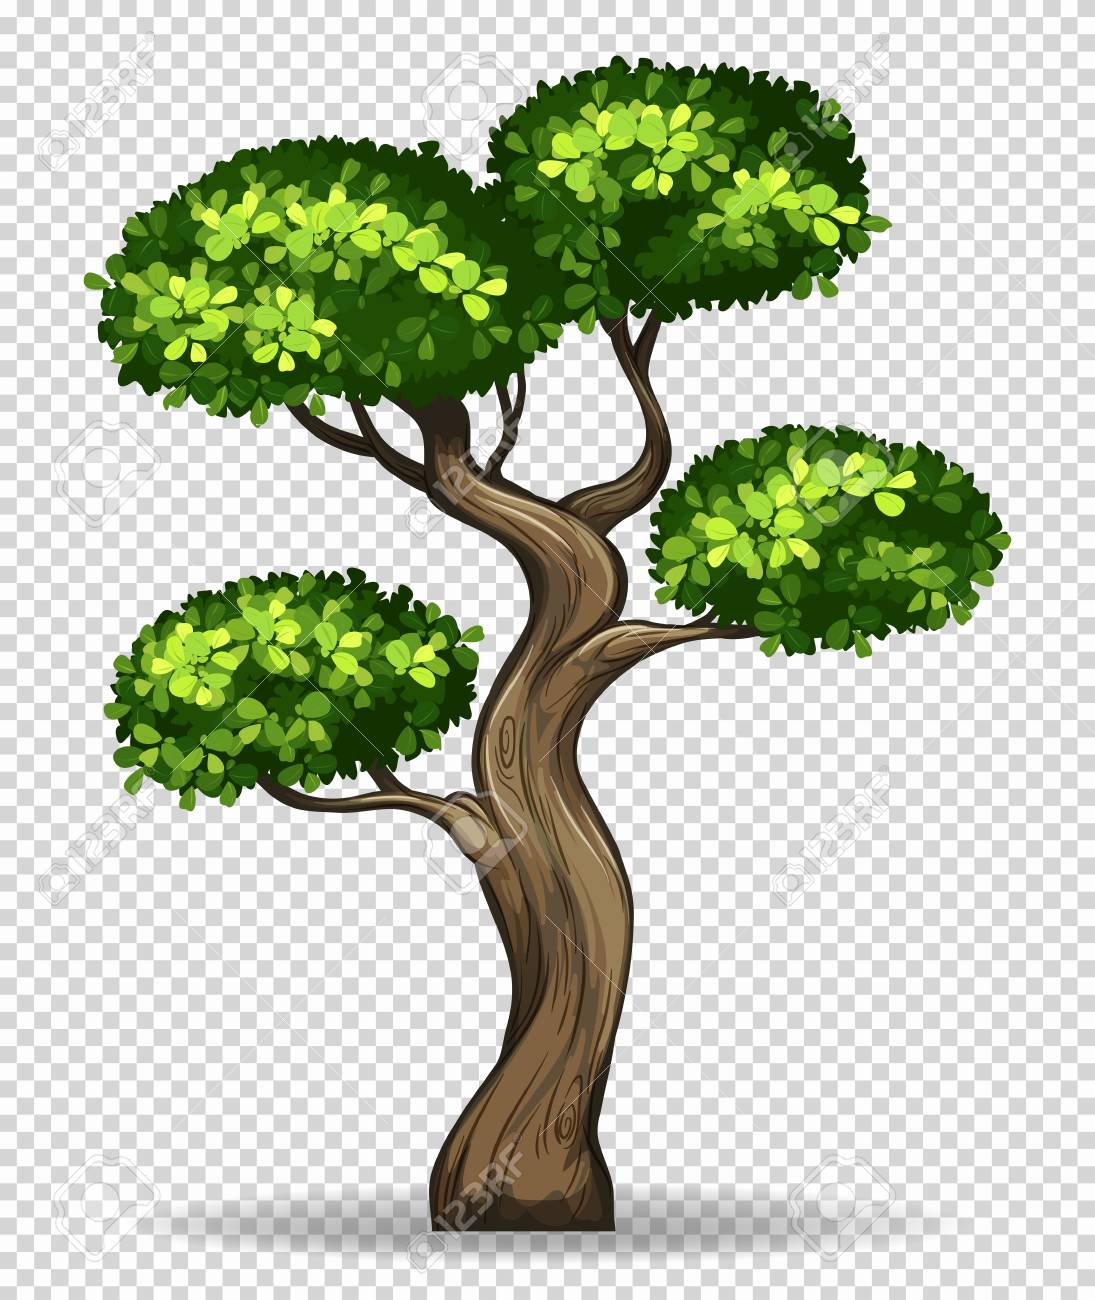 Bonsai Tree Drawing at GetDrawings.com   Free for personal use ...